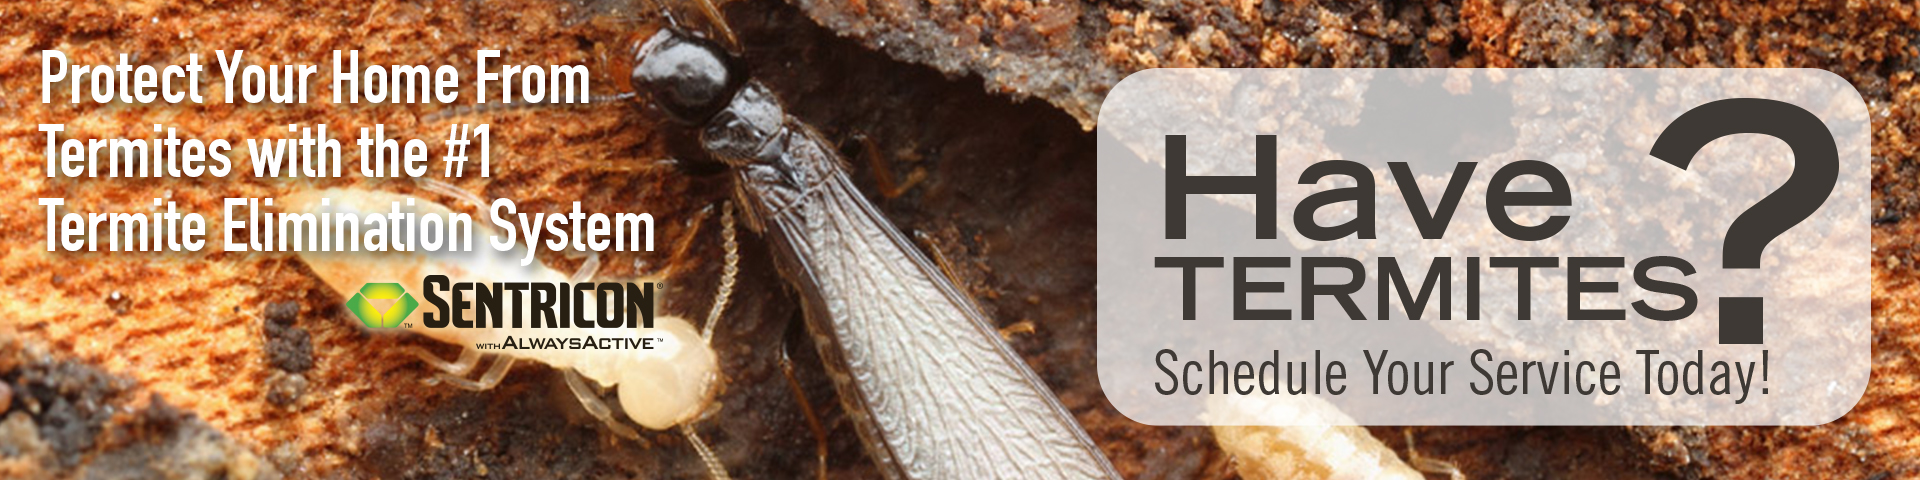 Termite Protection and Elimination-Barnetts Termite and Pest Control